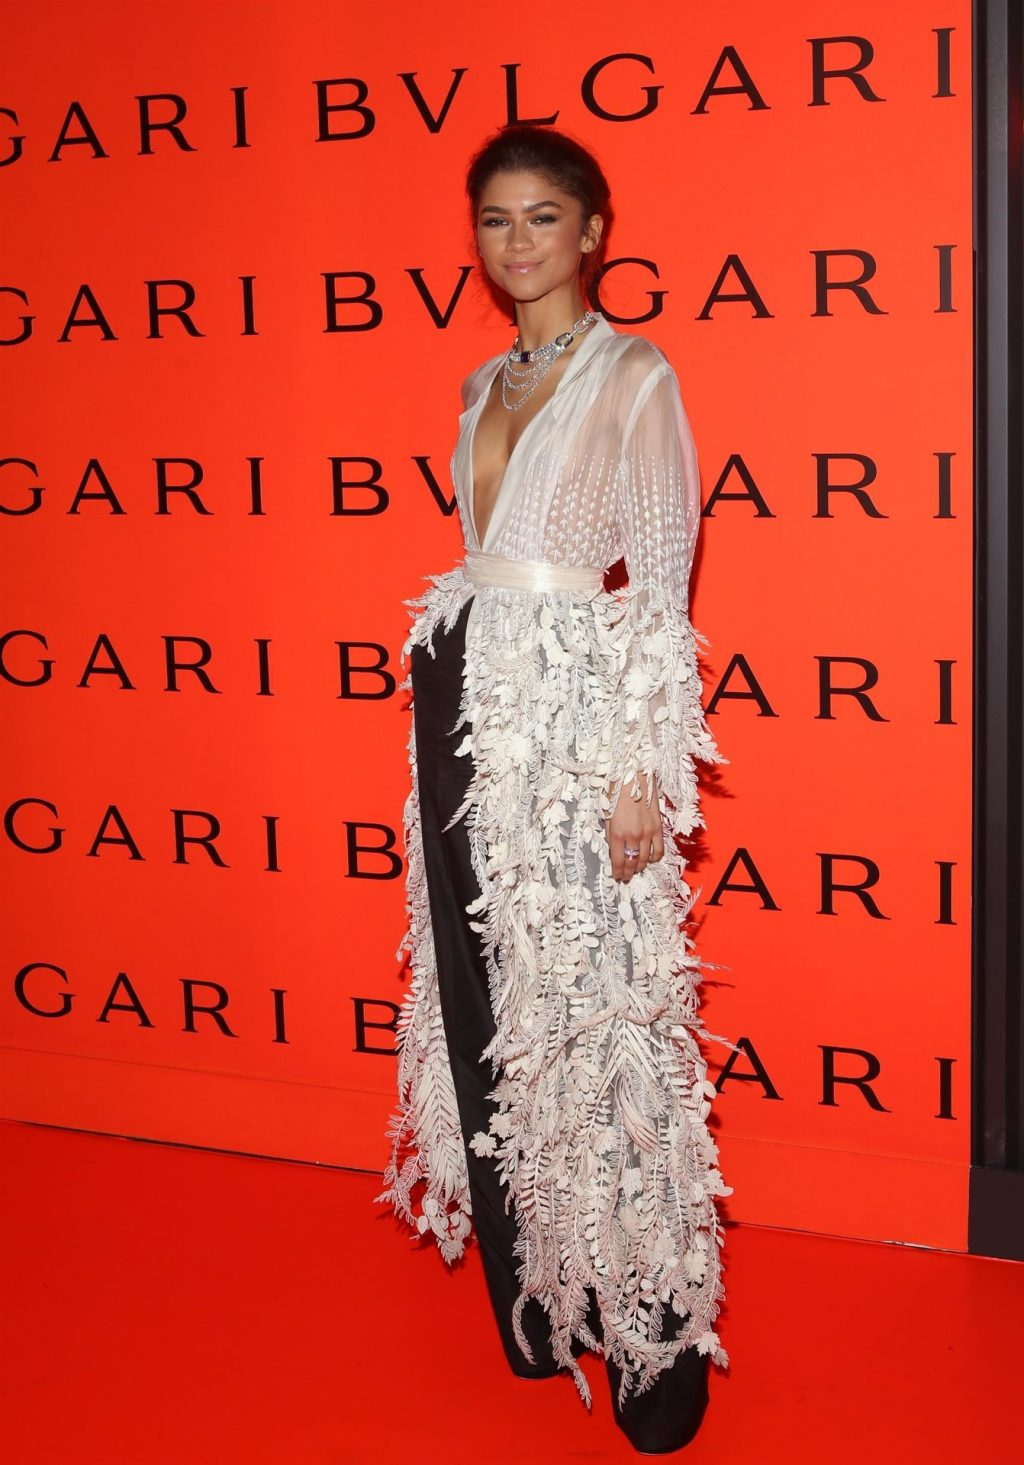 Zendaya Shows Her Small Tits at the Bvlgari Party (52 Photos)